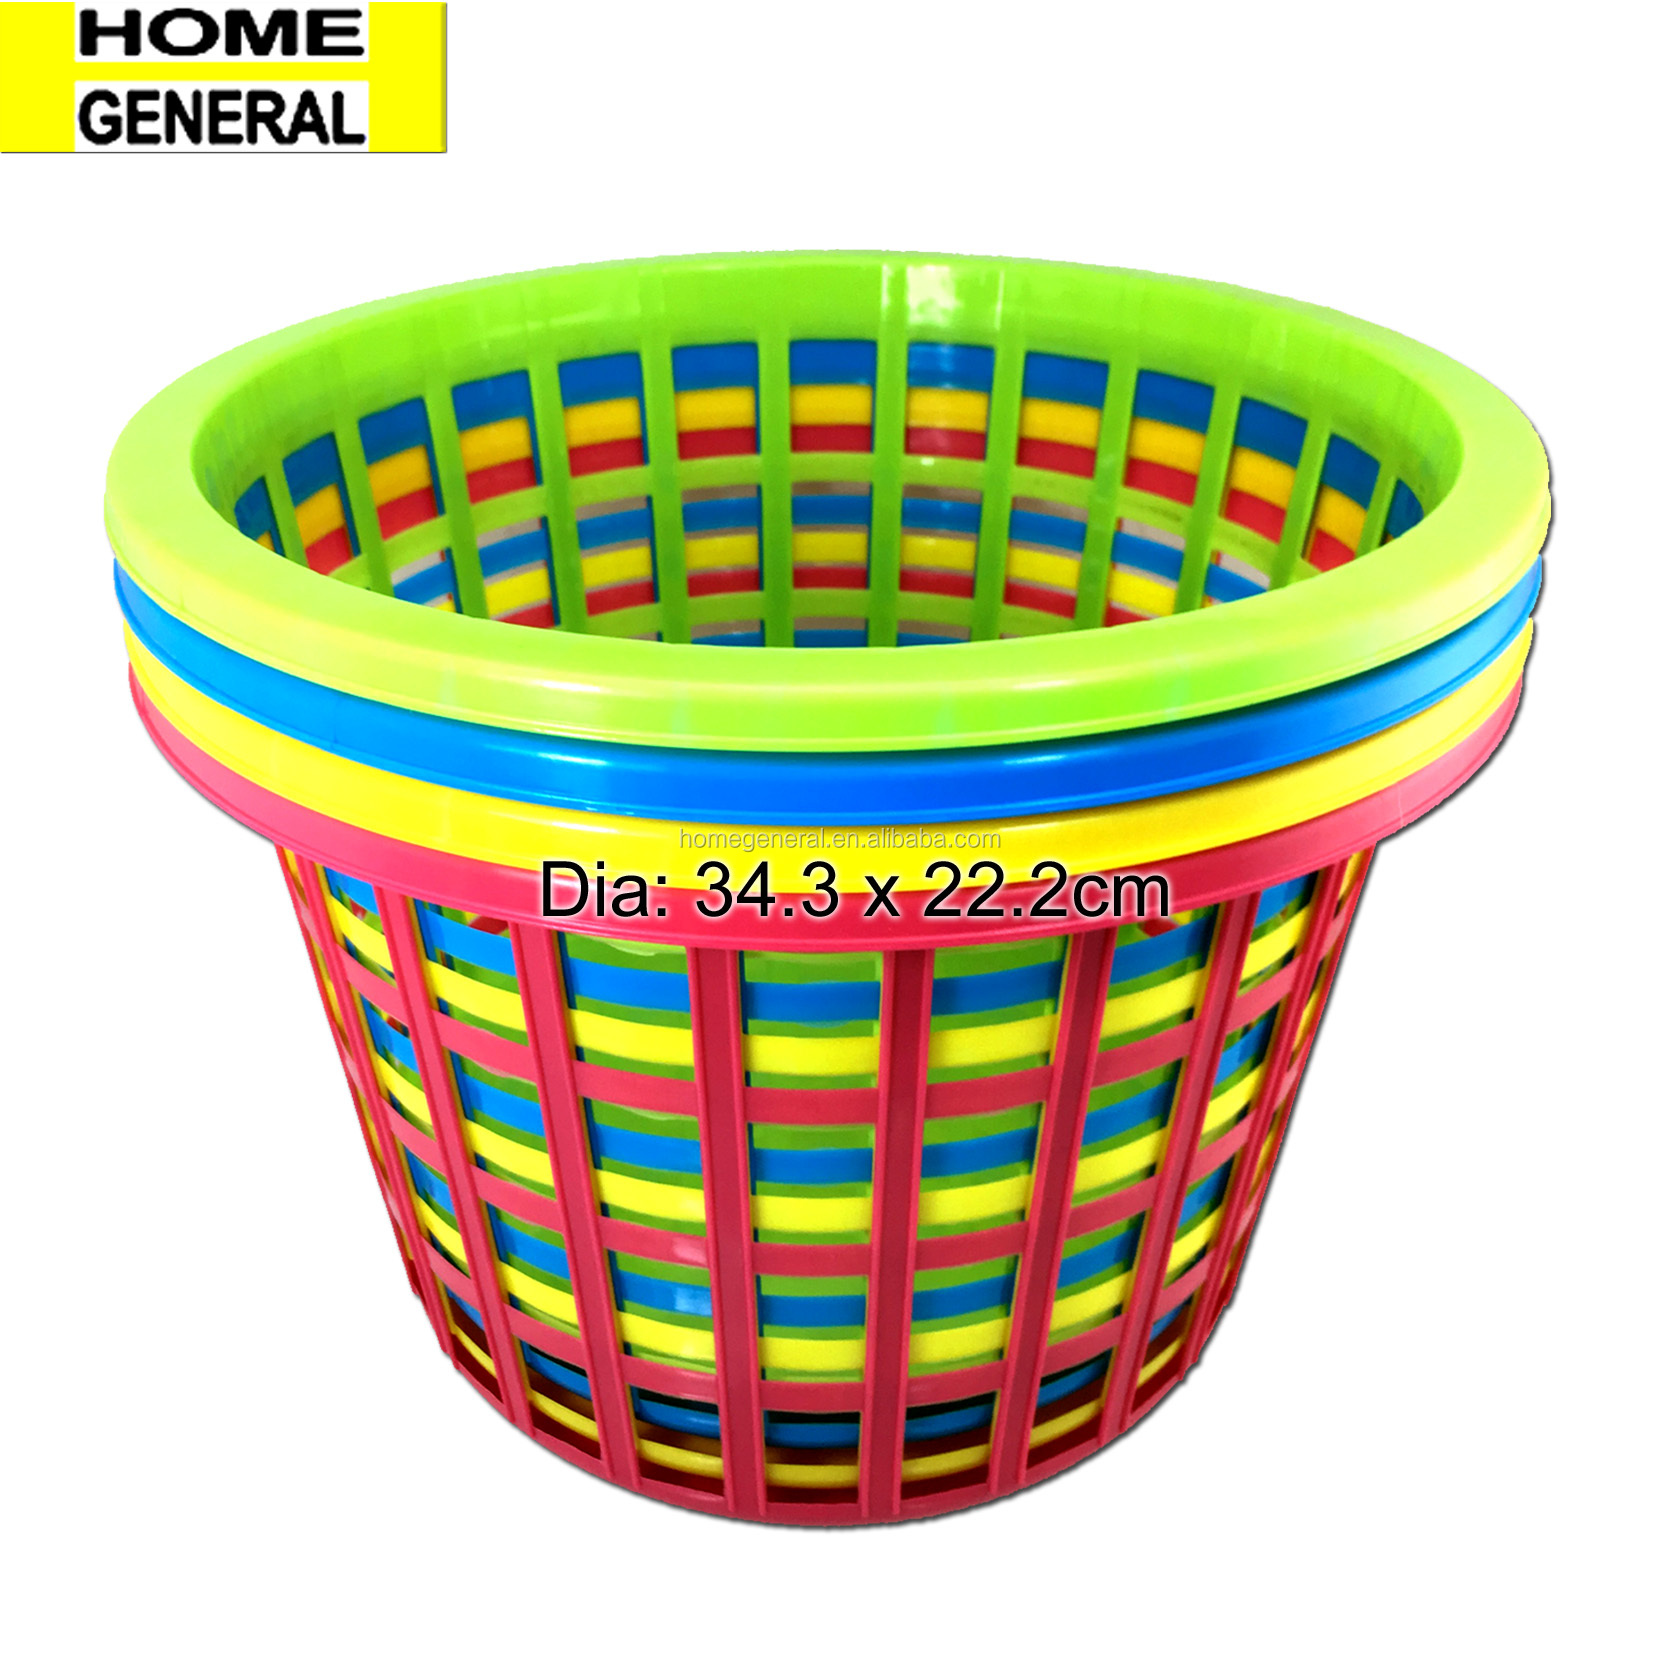 BASKET GENERAL ROUND PLASTIC BASKET LAUNDRY BASKET